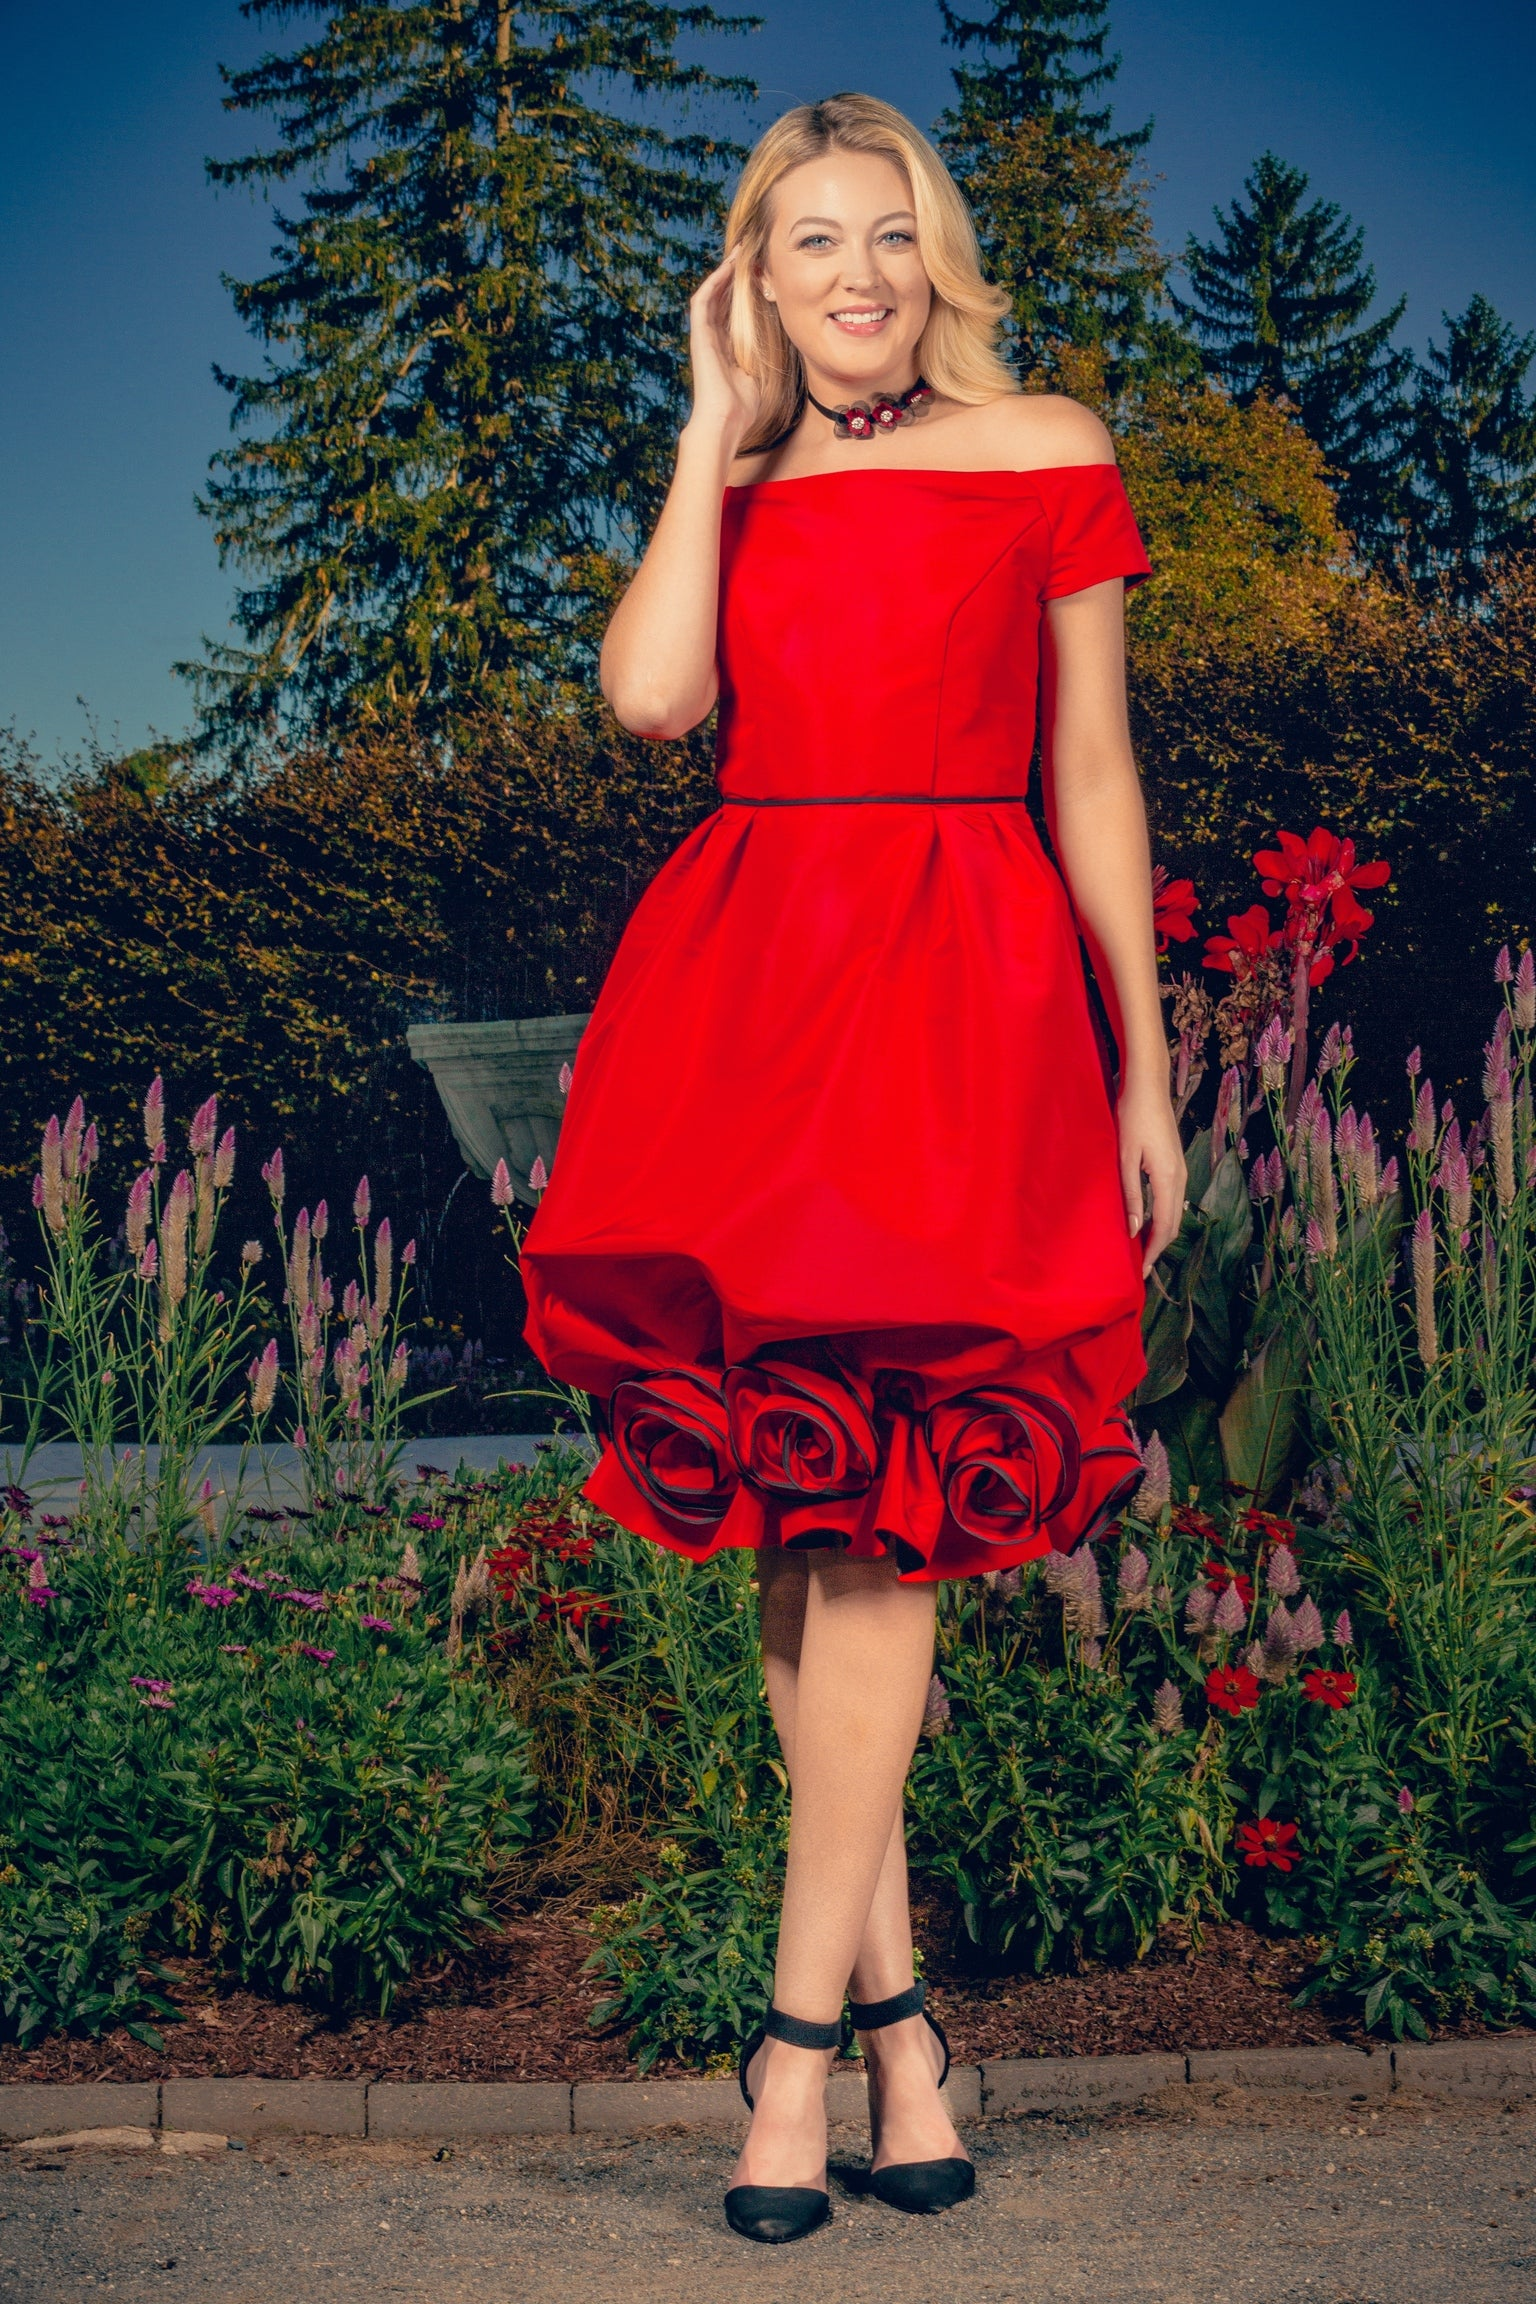 anna nieman designer dress Boston. Everyone's excitement! A rich red off-the-shoulder dress, with the skirt finished with luxurious roses.